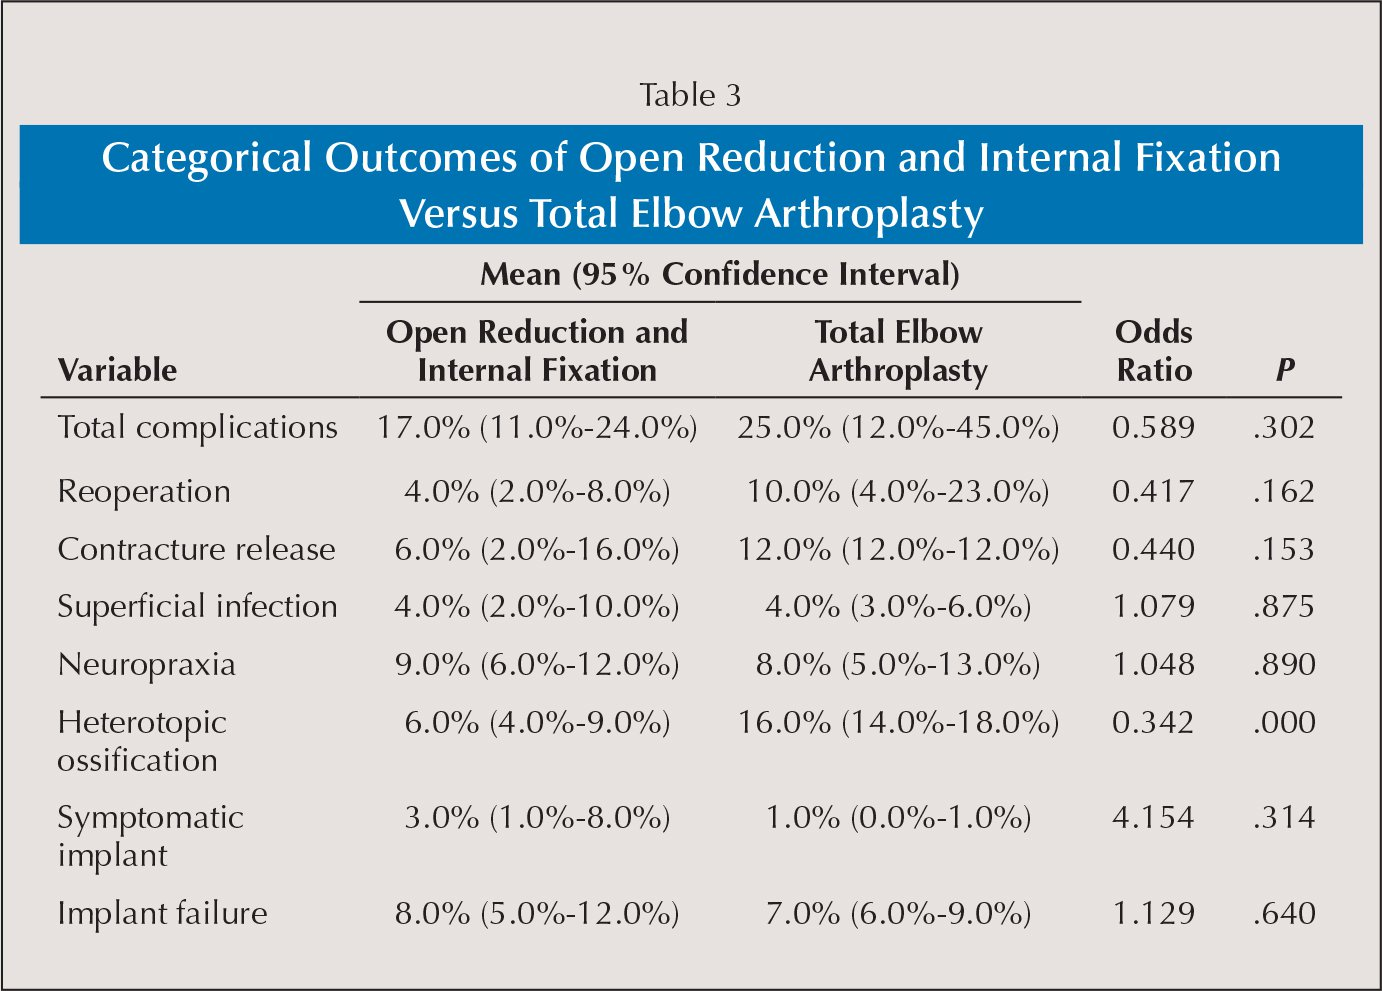 Categorical Outcomes of Open Reduction and Internal Fixation Versus Total Elbow Arthroplasty